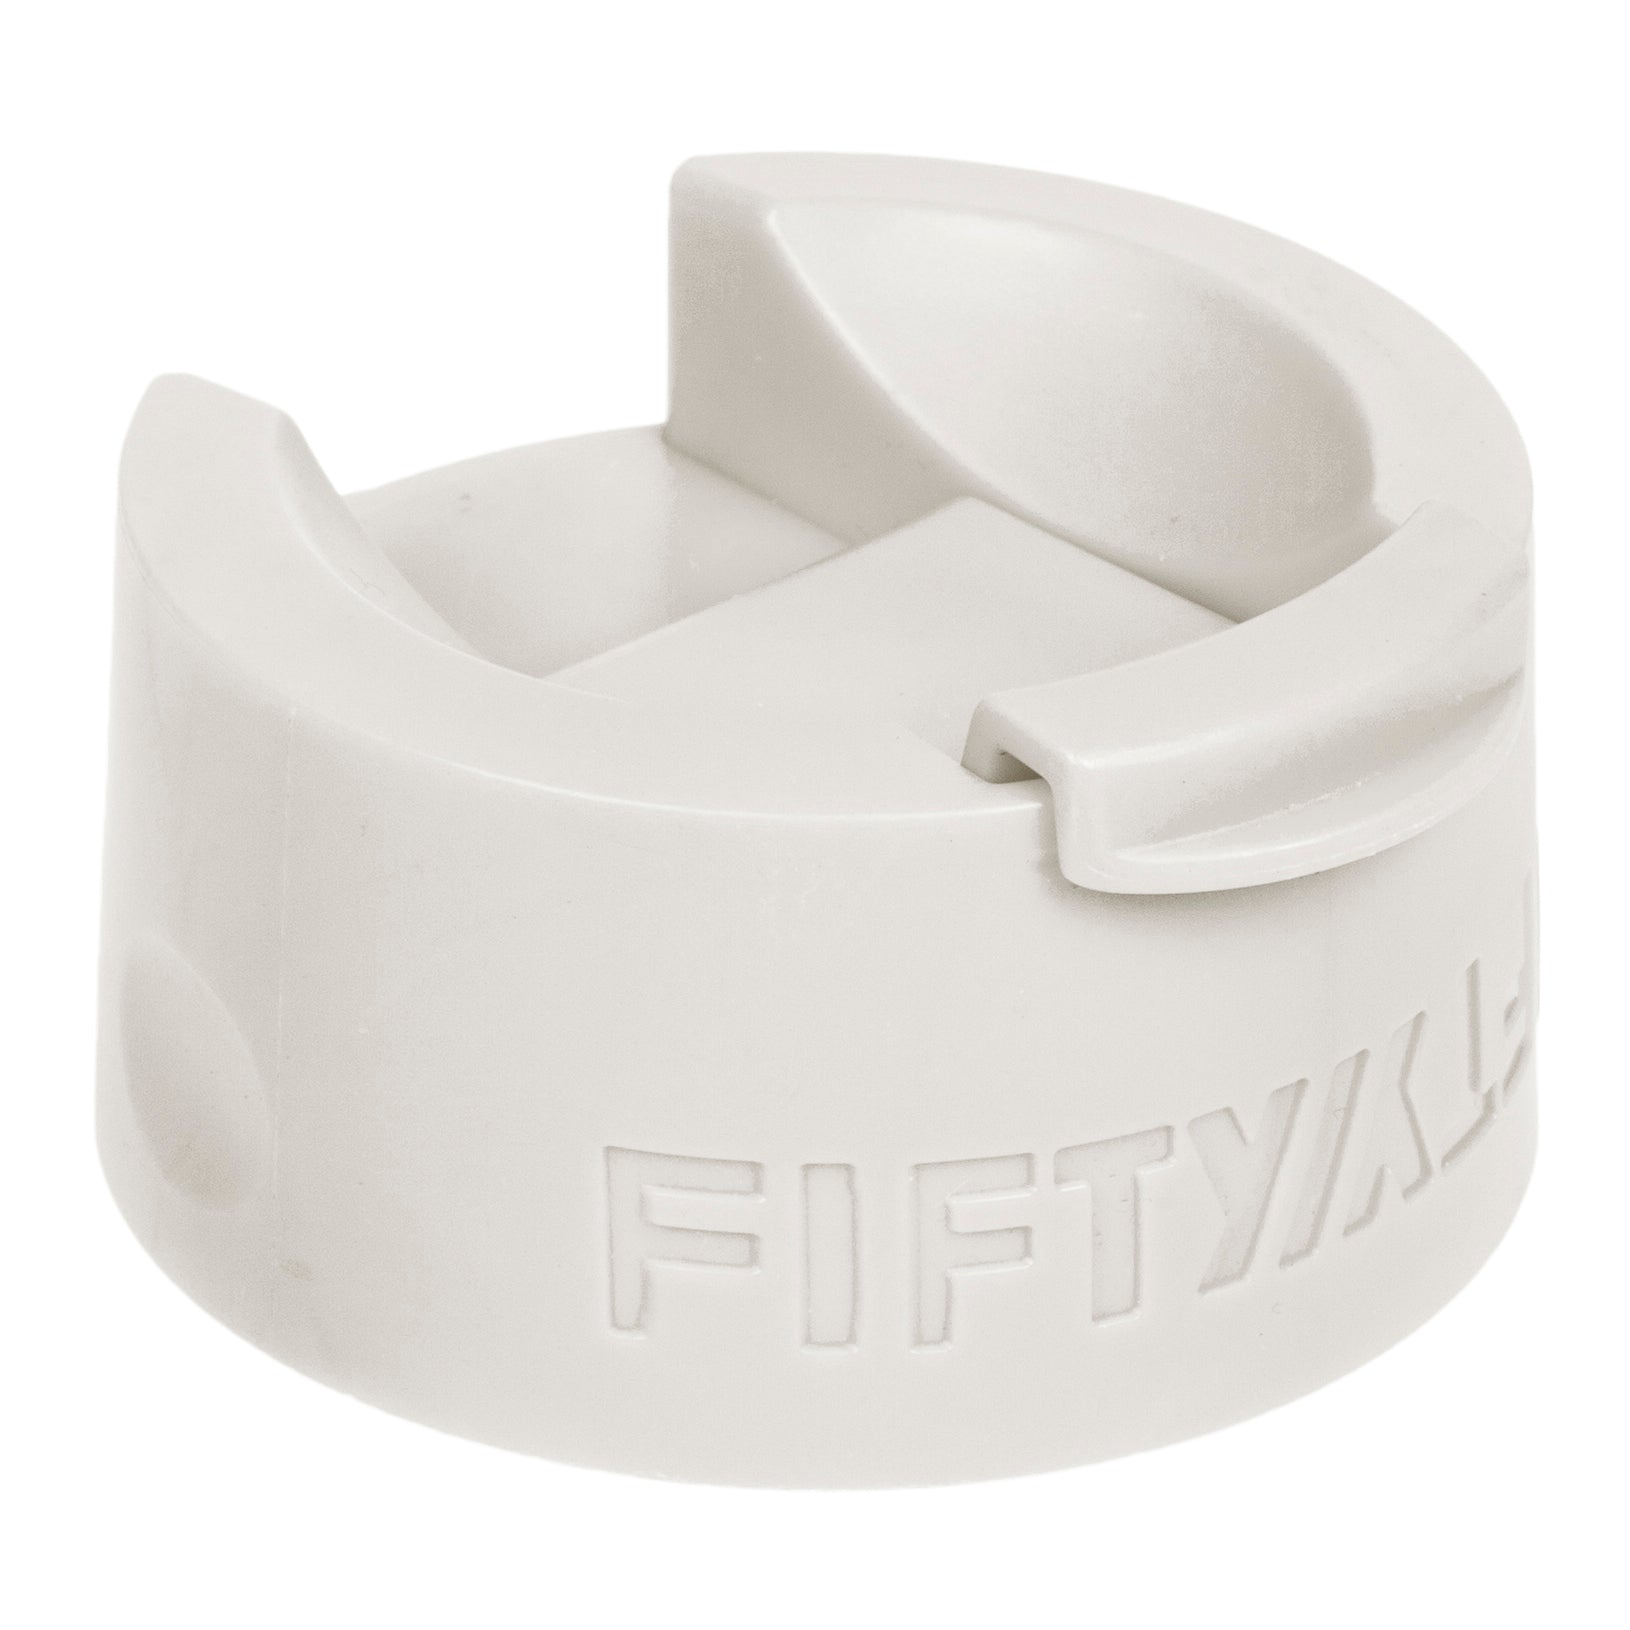 Details about  /Fifty//Fifty Wide Mouth Easy Grip Handle Lid